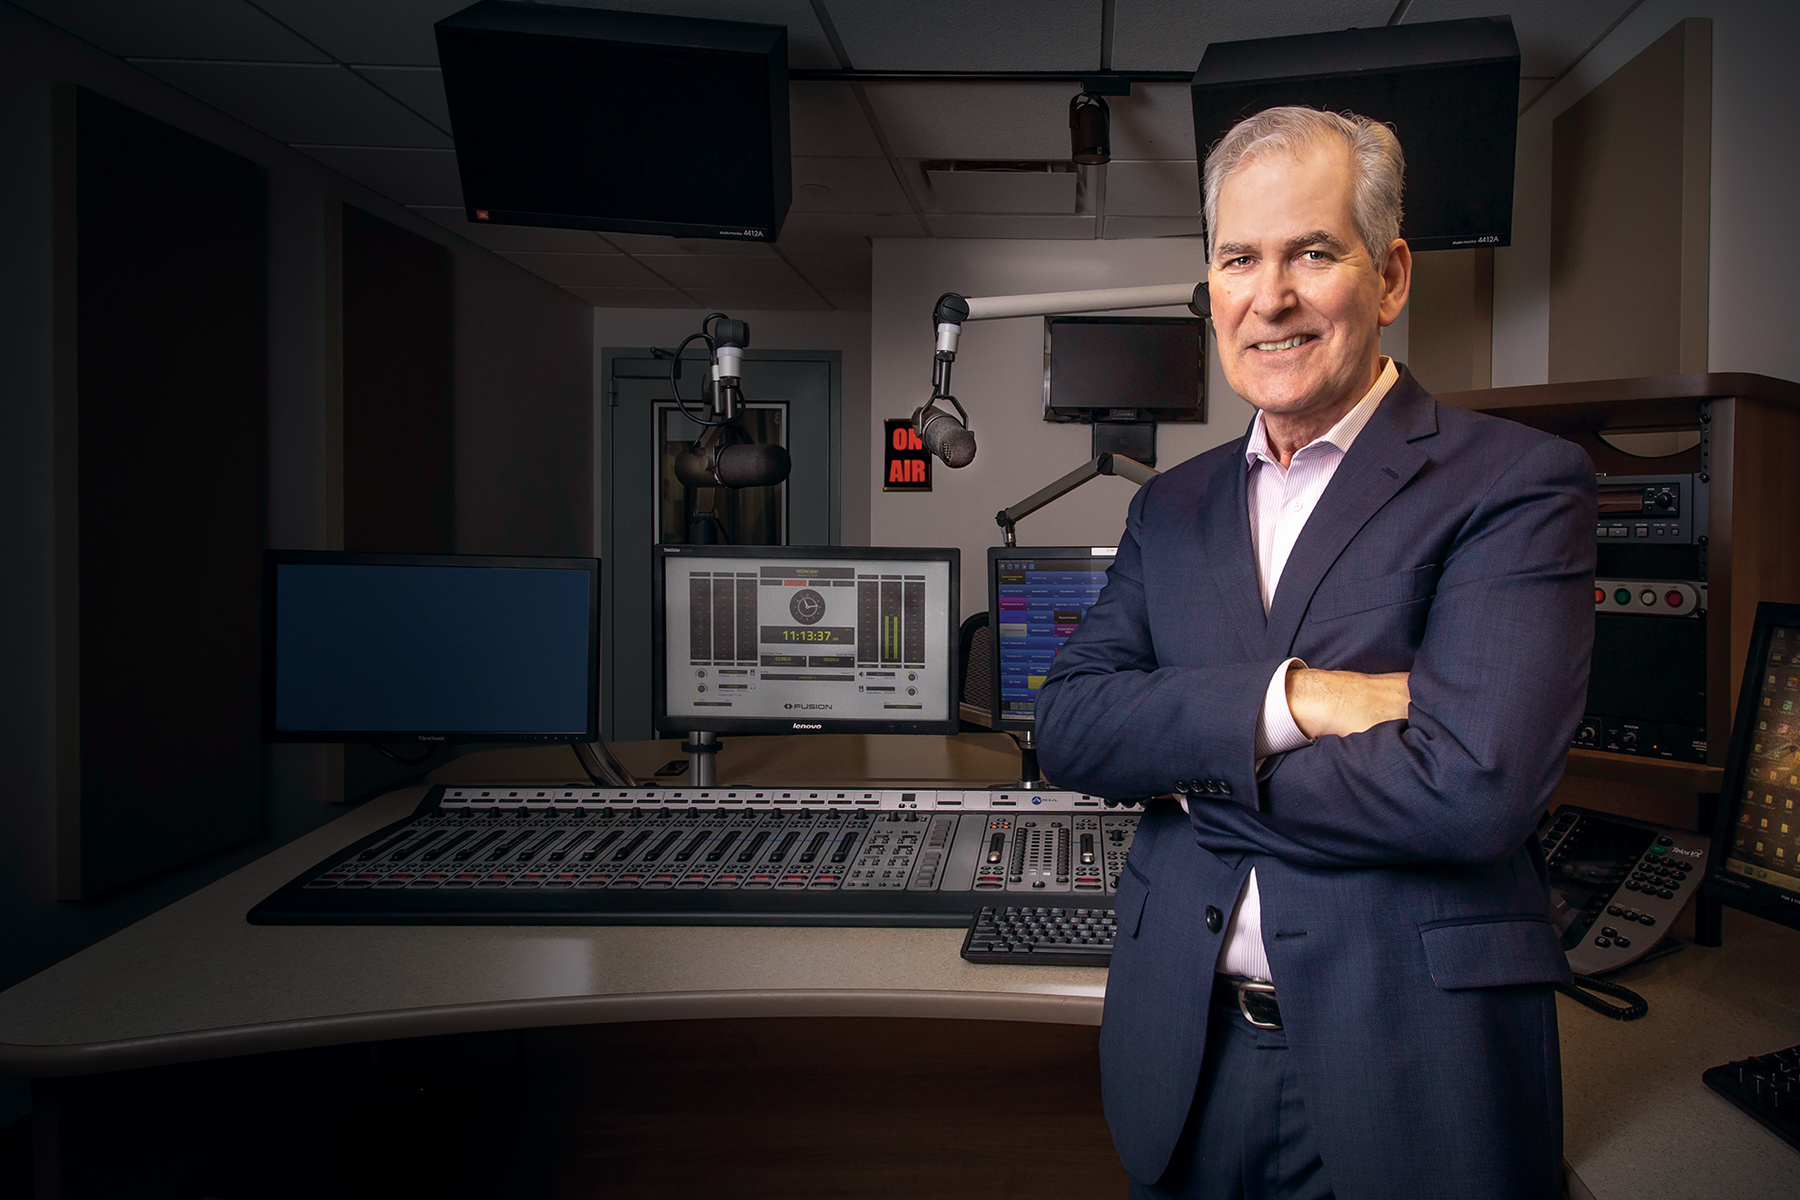 Dan Bennett Built Dallas Into a Radio Powerhouse - D Magazine